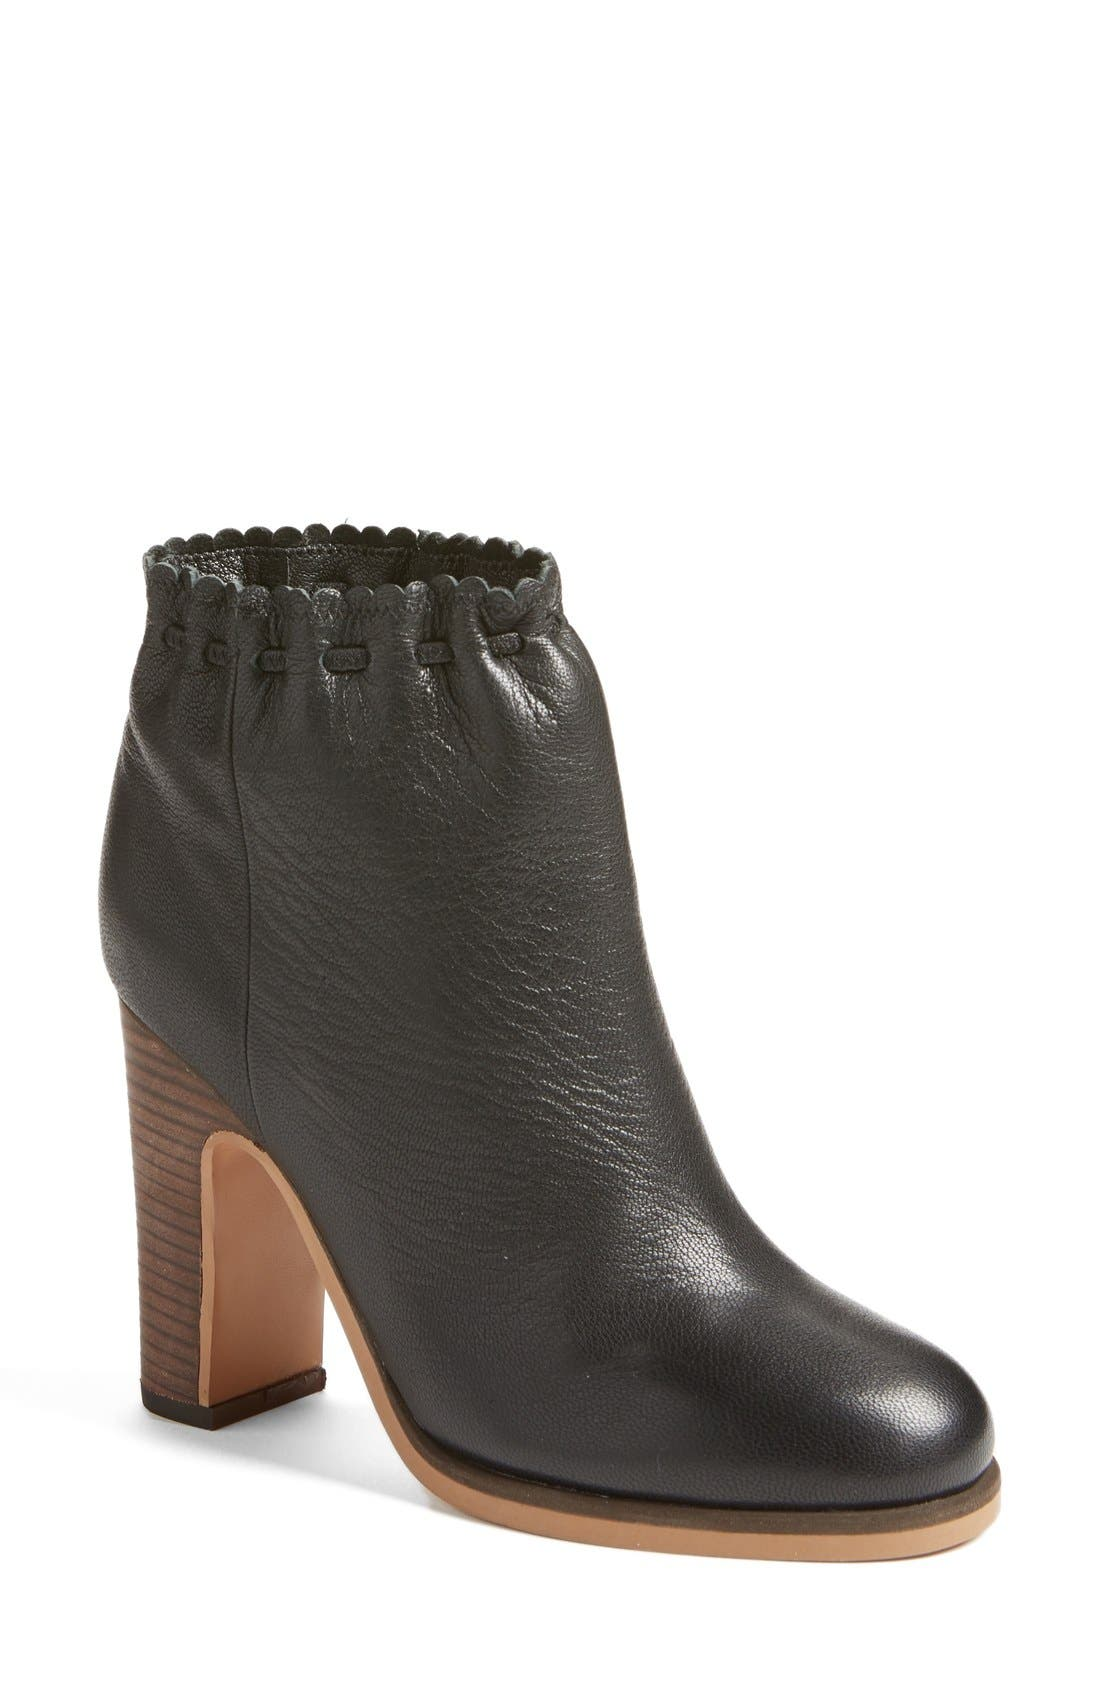 'Jane' Scalloped Bootie,                             Main thumbnail 1, color,                             001